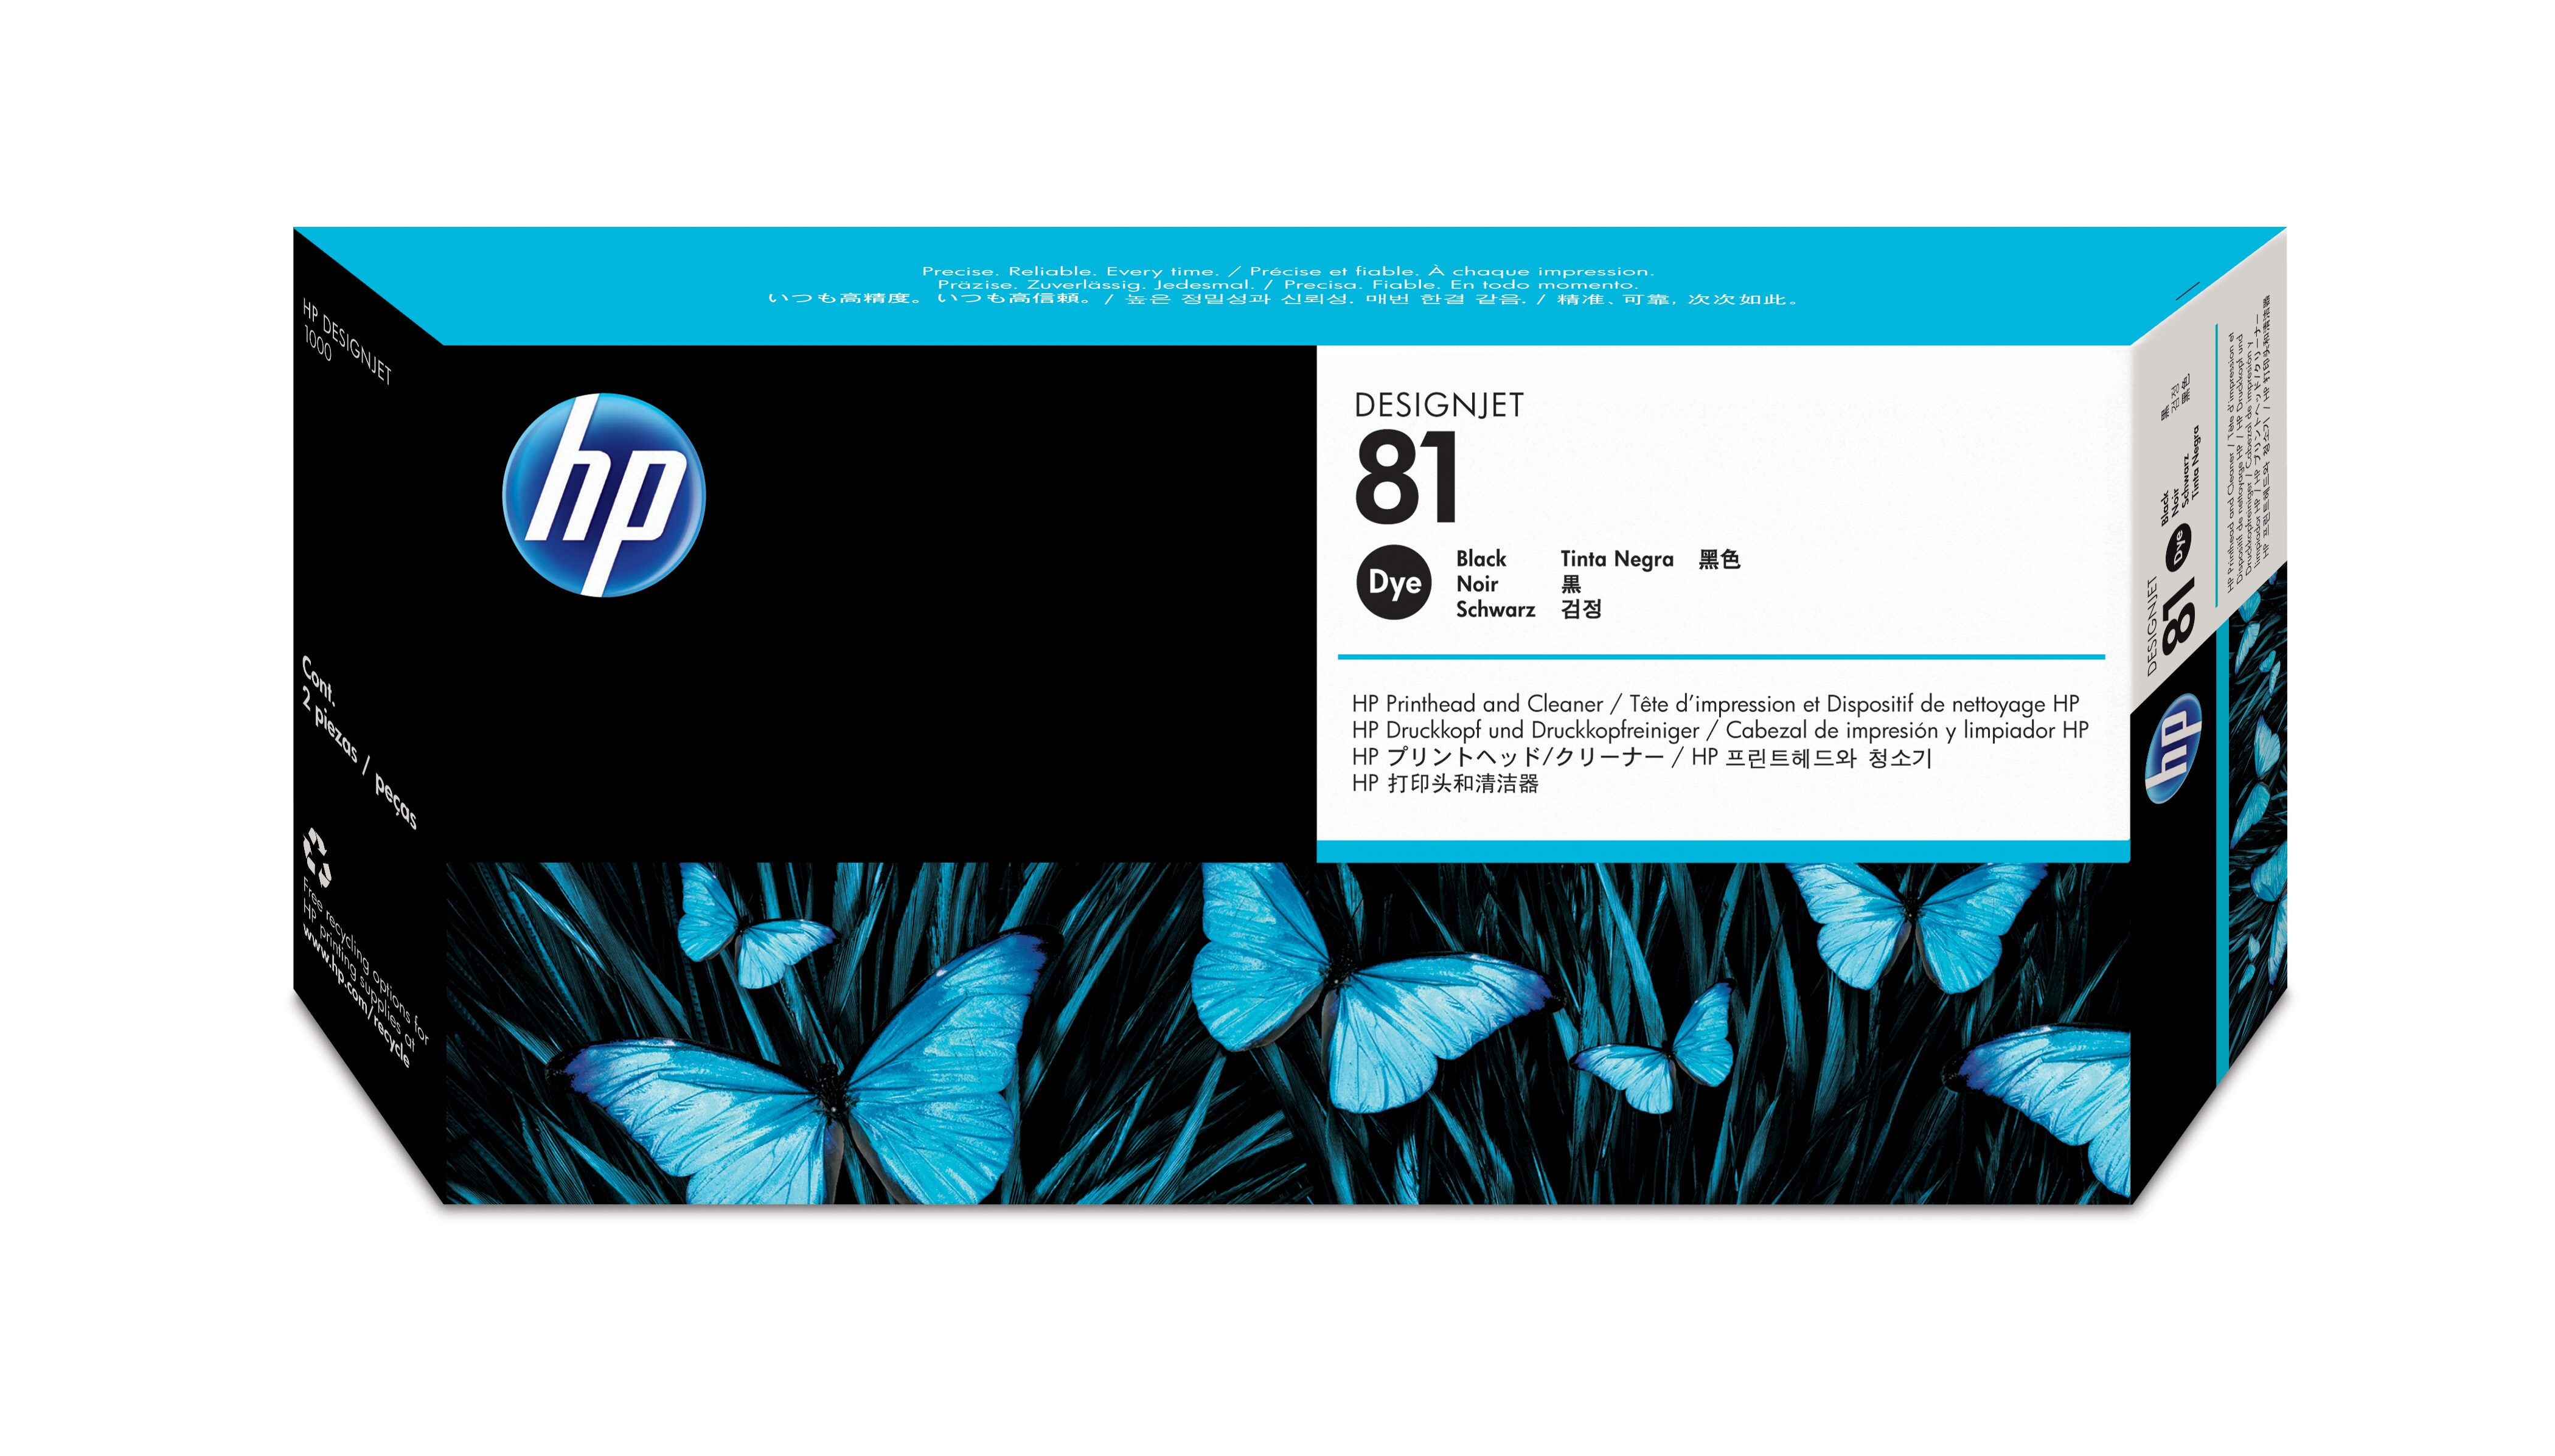 Hp No.81 Dye Black Printhead & Clnr C4950a - WC01